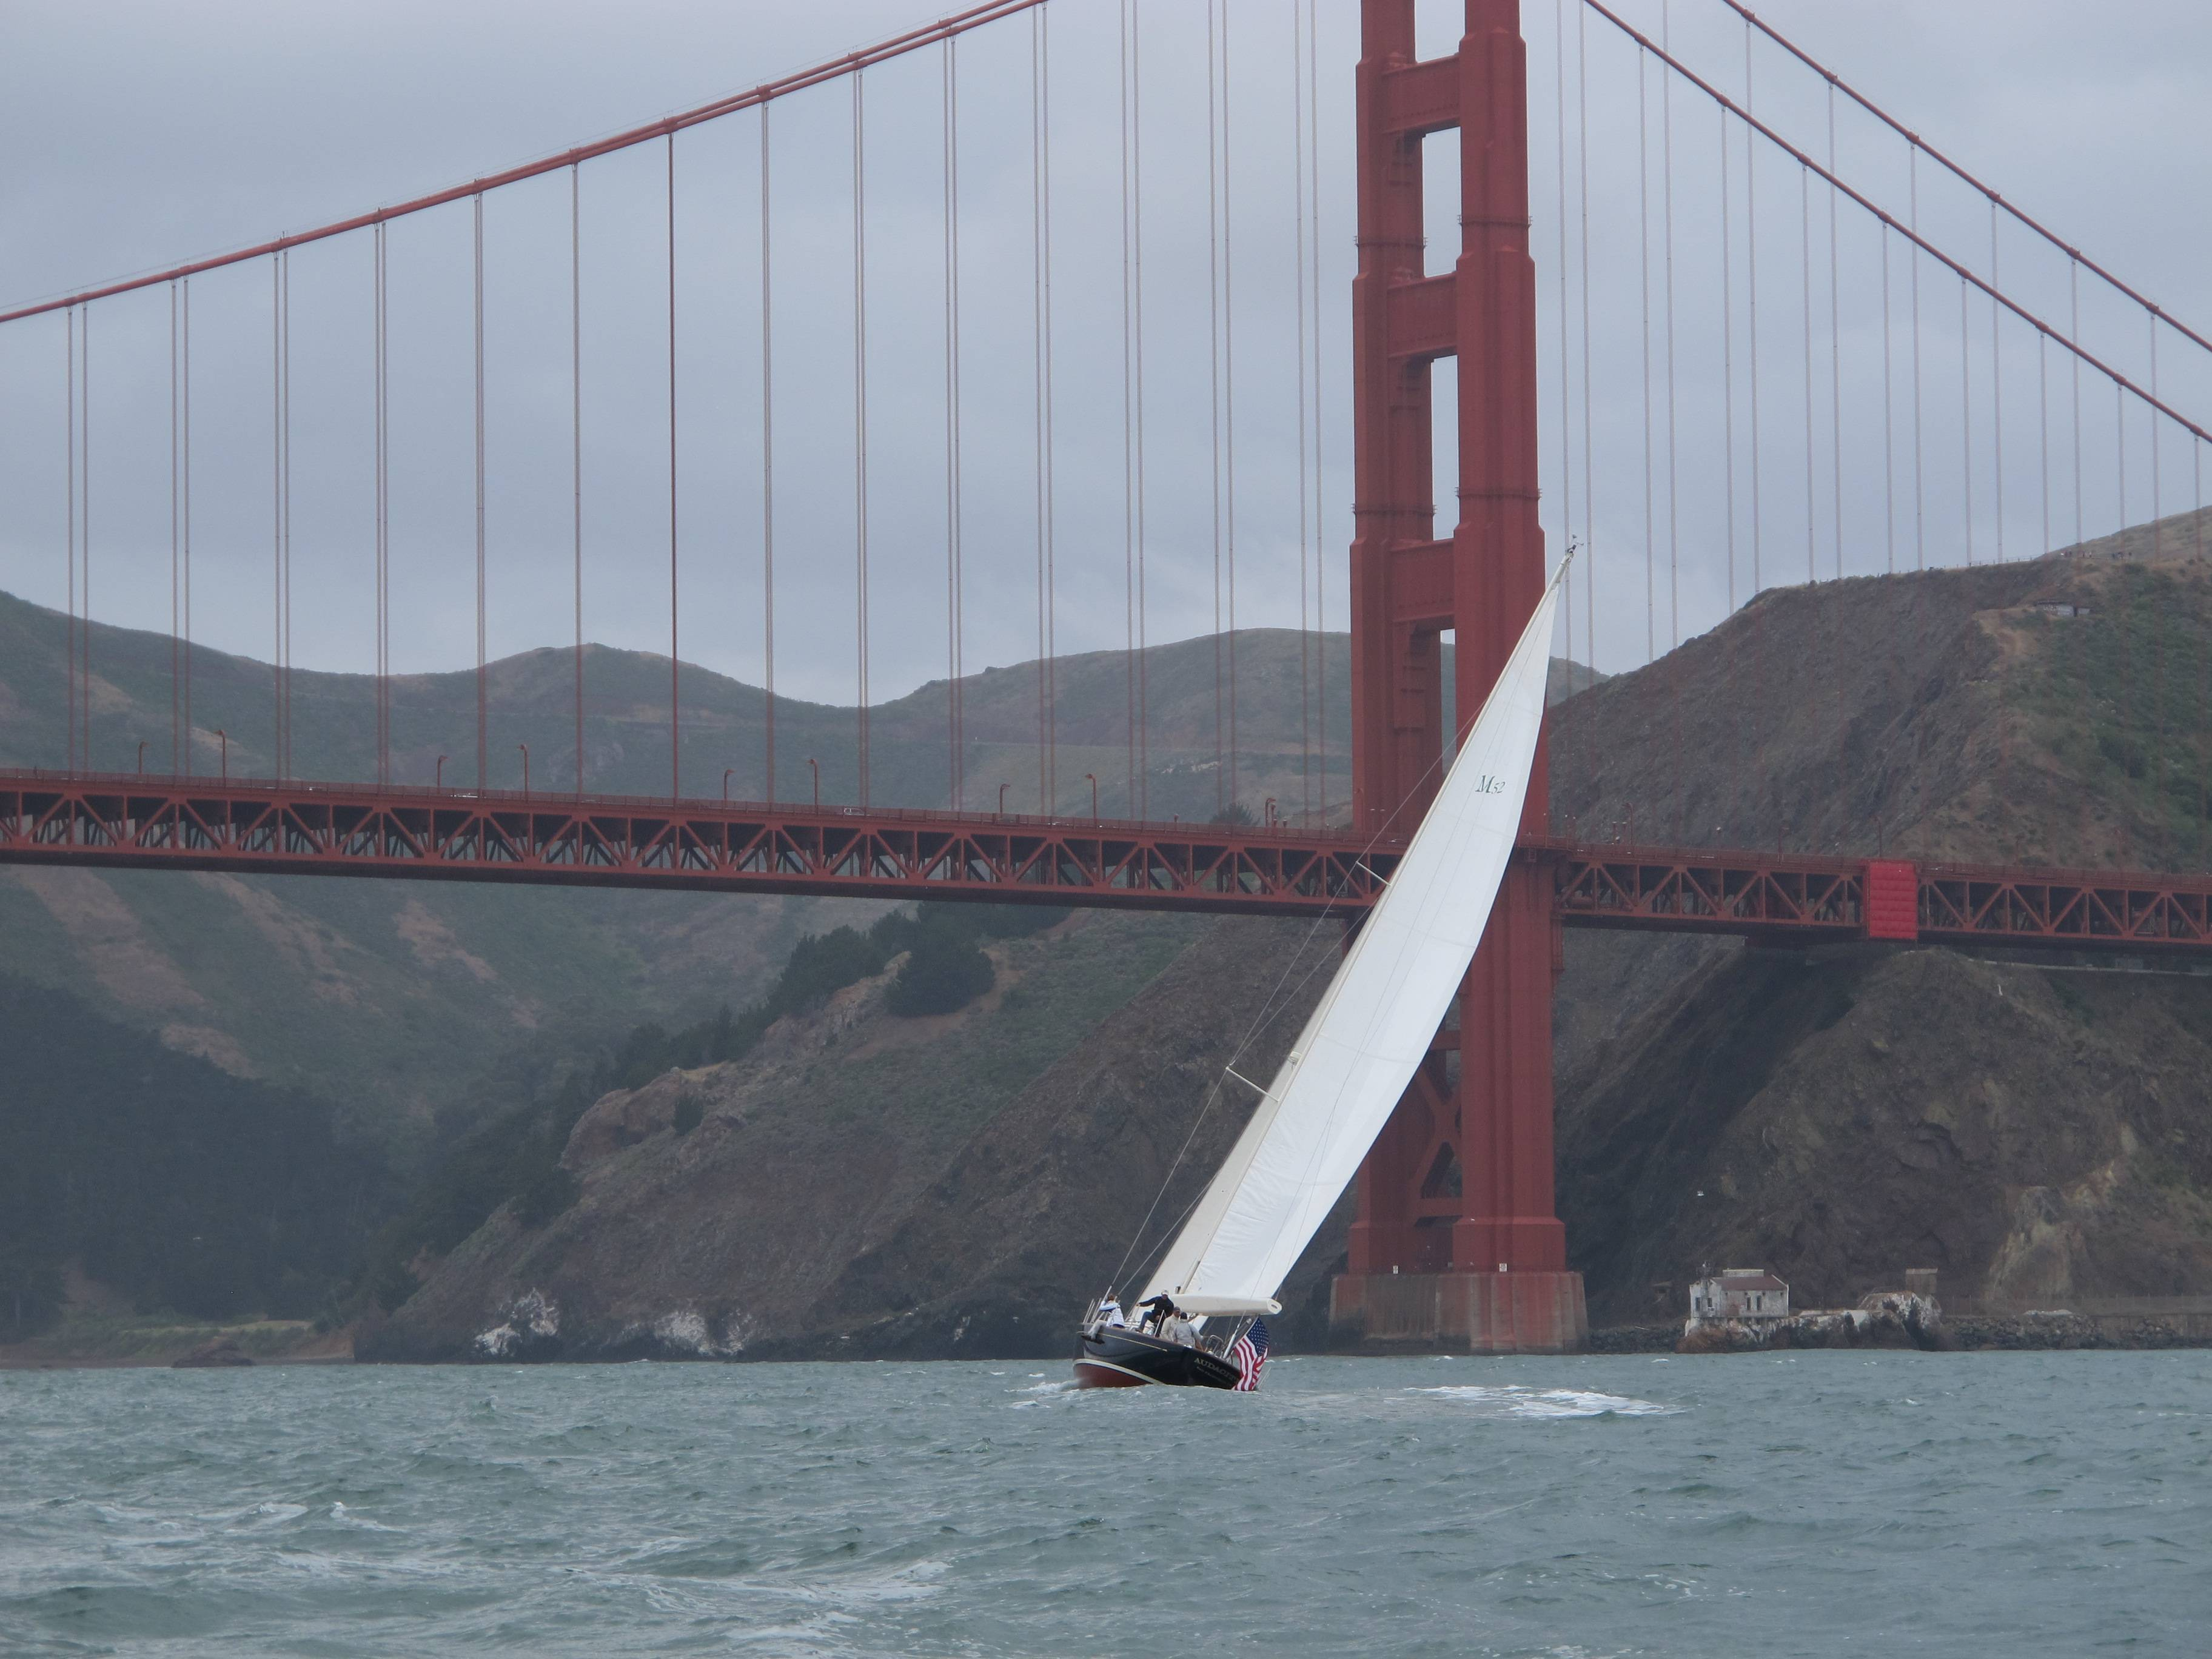 Audacity's first sail under the GG Bridge